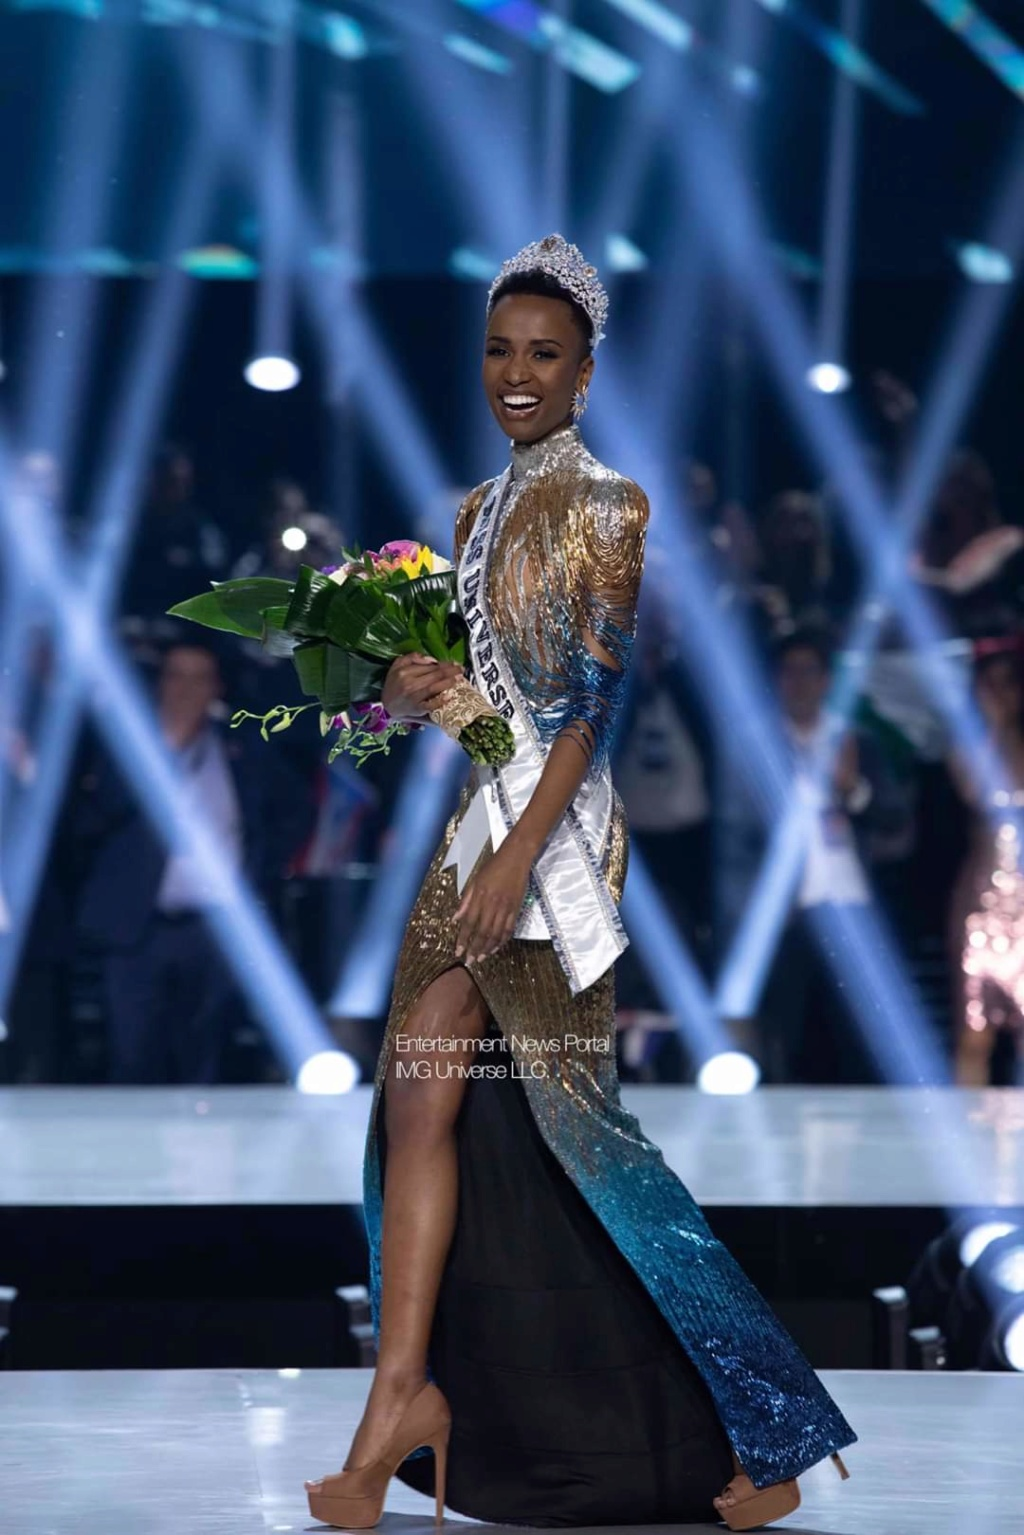 The Official Thread Of Miss Universe 2019 : Zozibini Tunzi of South Africa Fb_14413